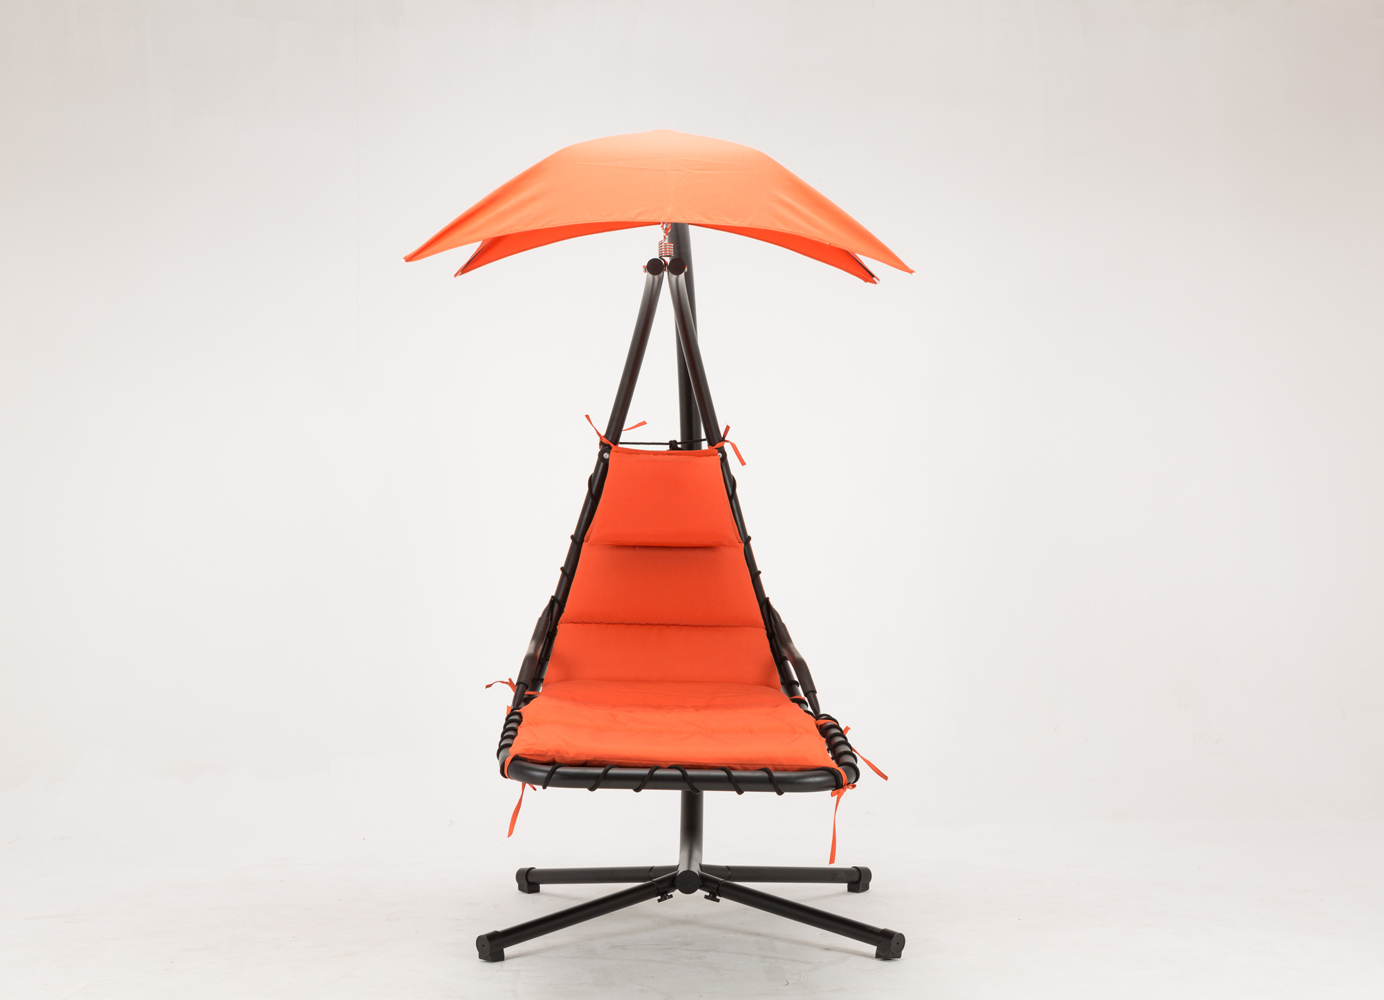 hanging umbrella chair human touch massage replacement parts chaise lounger arc stand air porch swing